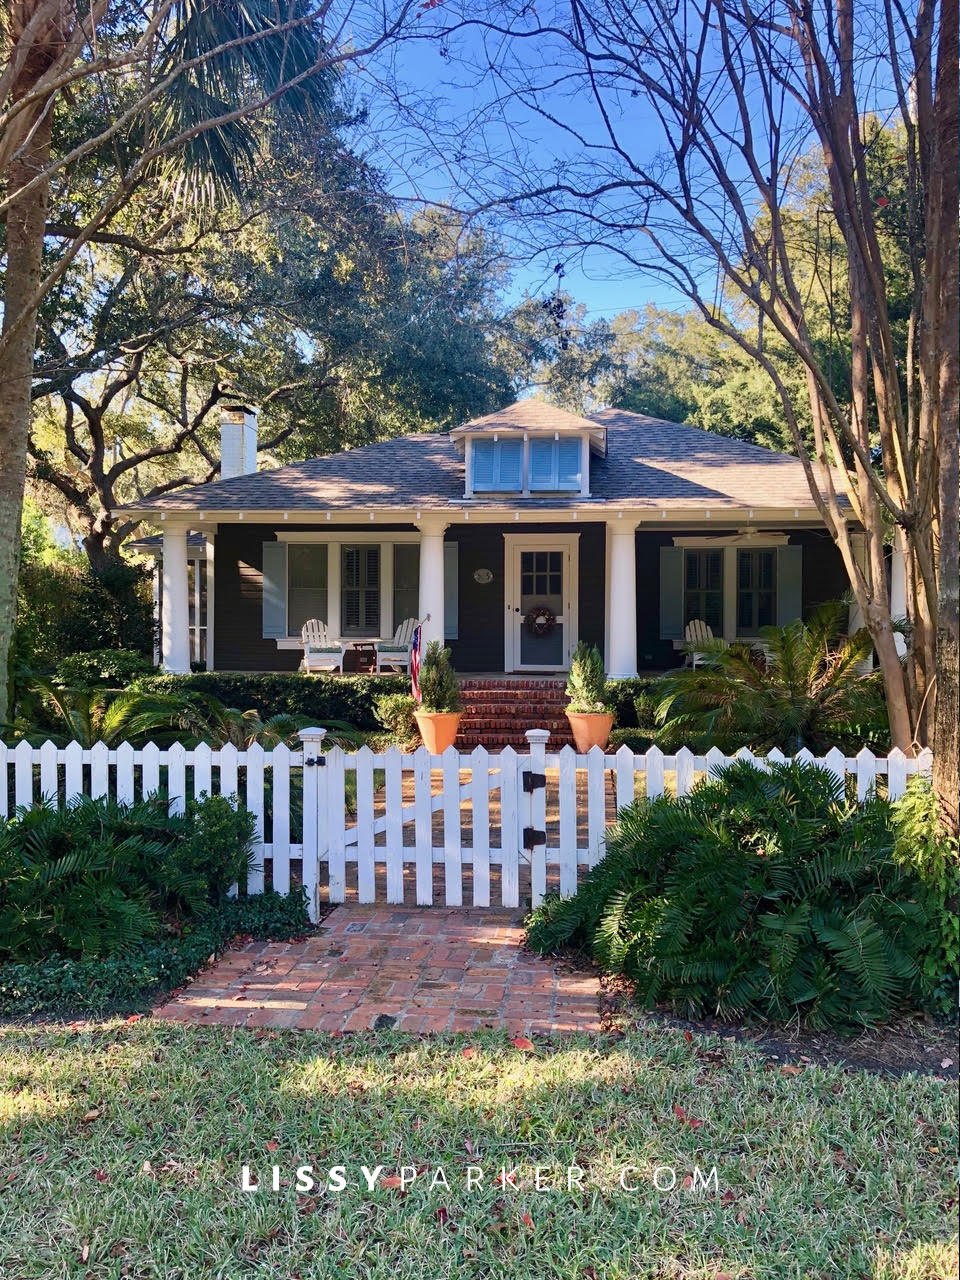 House crush 56-St Simons Island